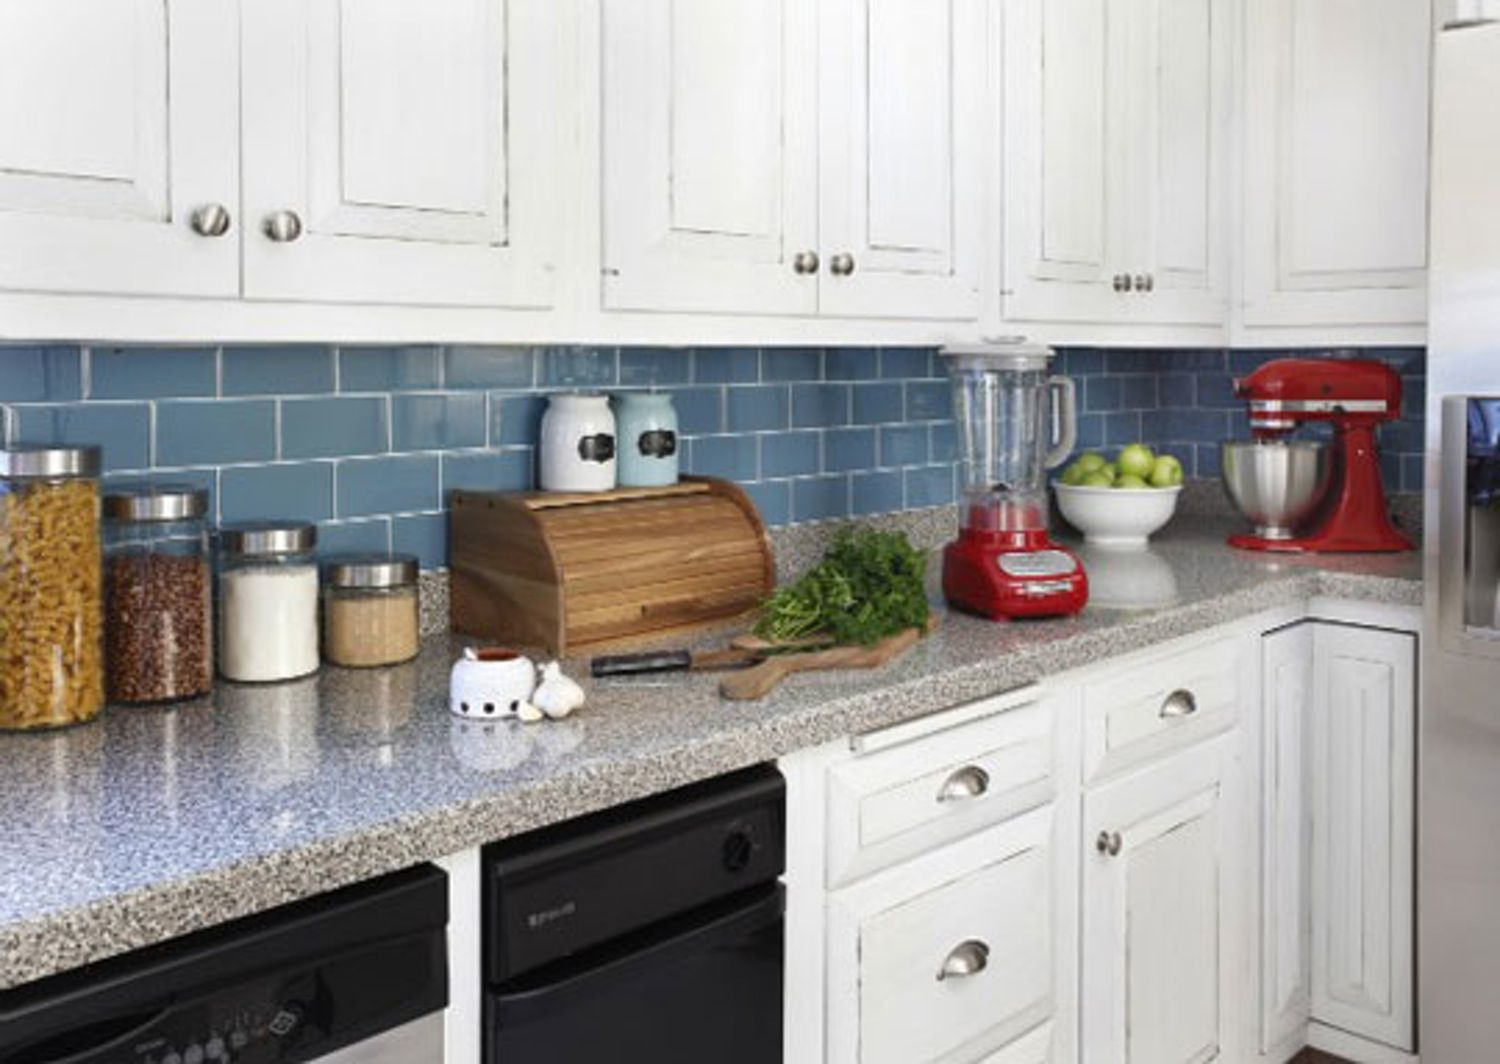 Renters Solutions: Install A Removable Backsplash